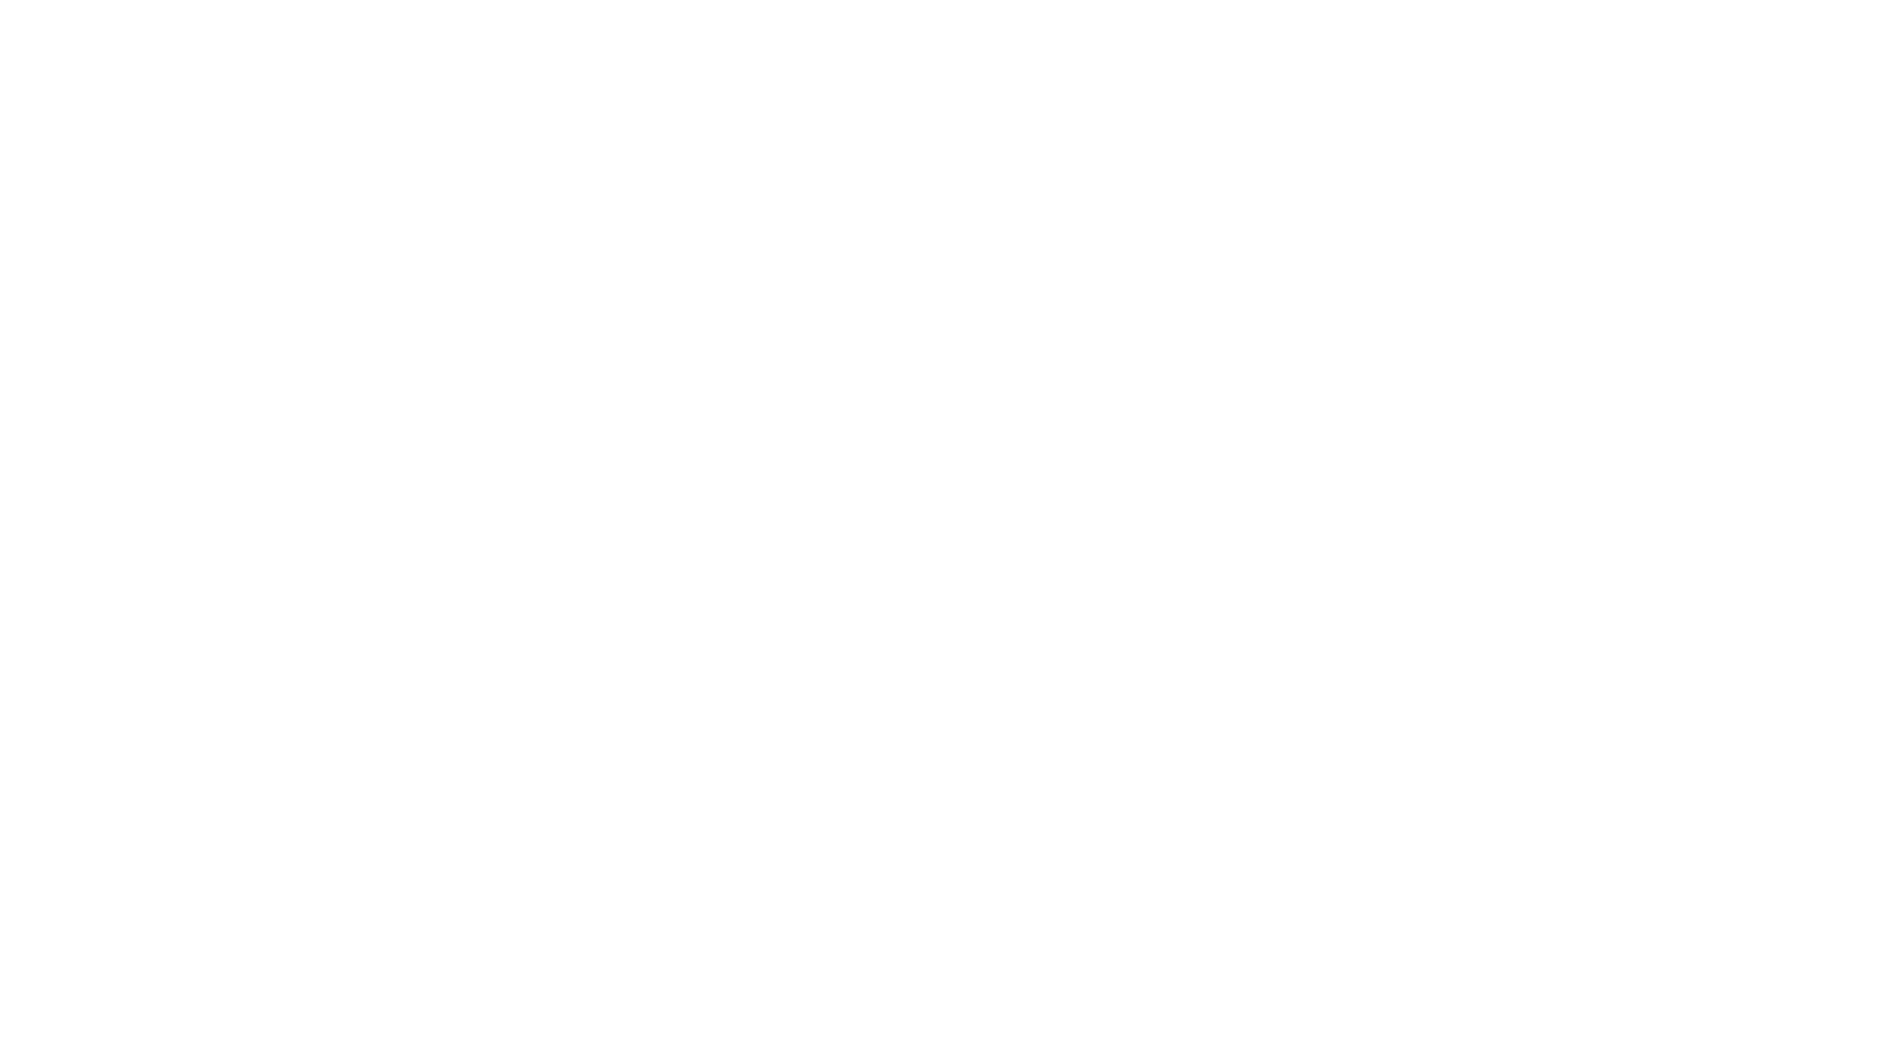 liverpool-comic-con-cover-text.png